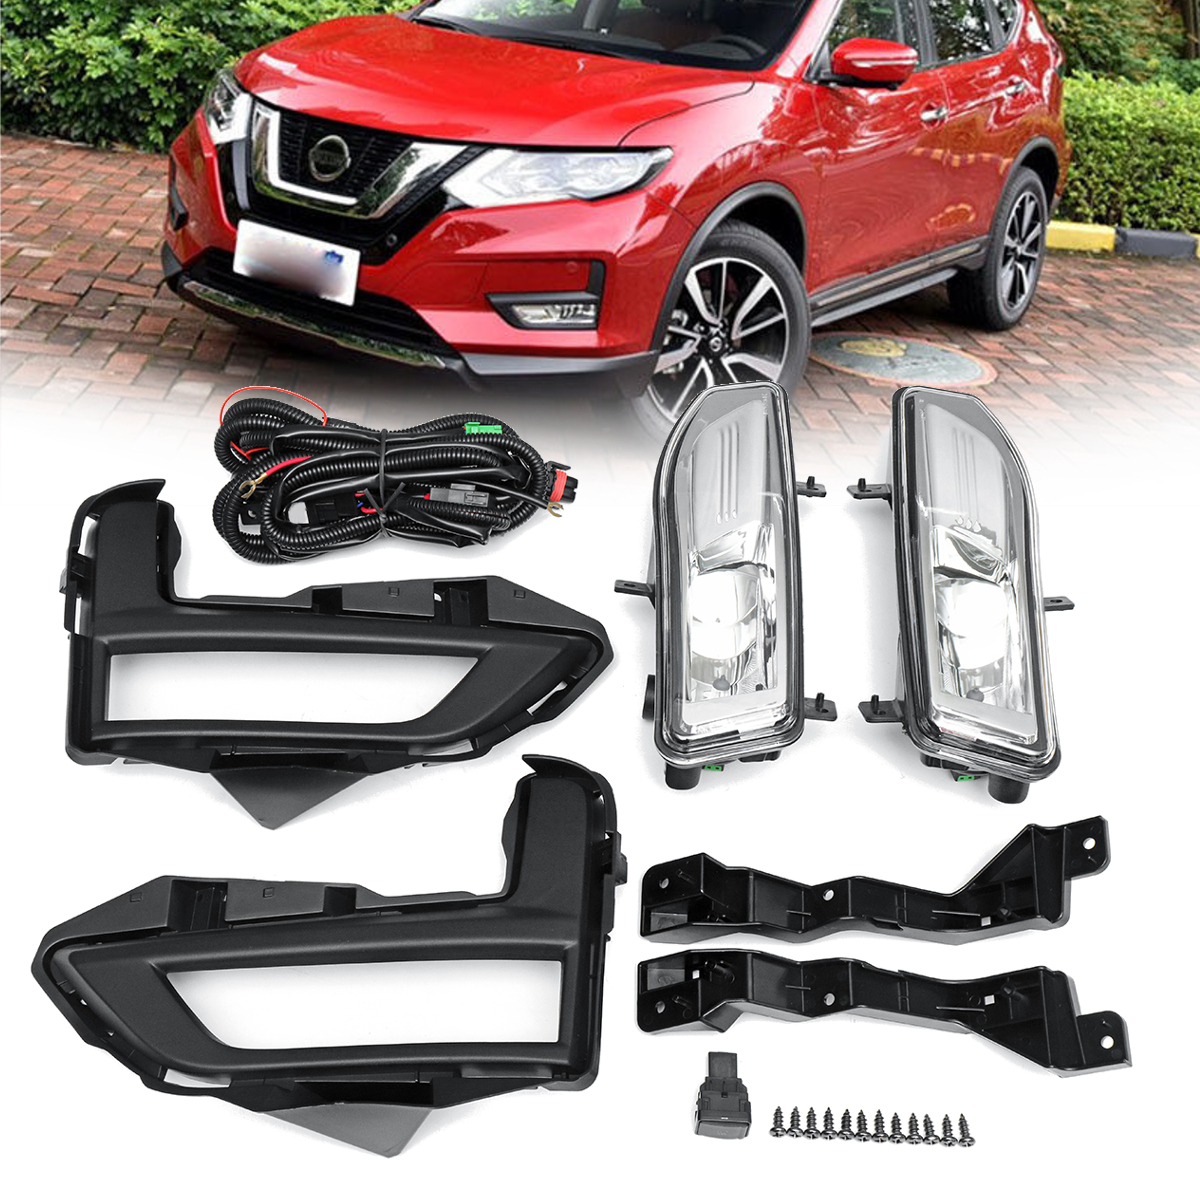 2018 Front Bumper Driving Spot Light Fog Lamp Assembly Kit for Nissan Rogue for Nissan X-Trail fog light lamp kit for nissan rogue x trail x trail 2014 2015 2016